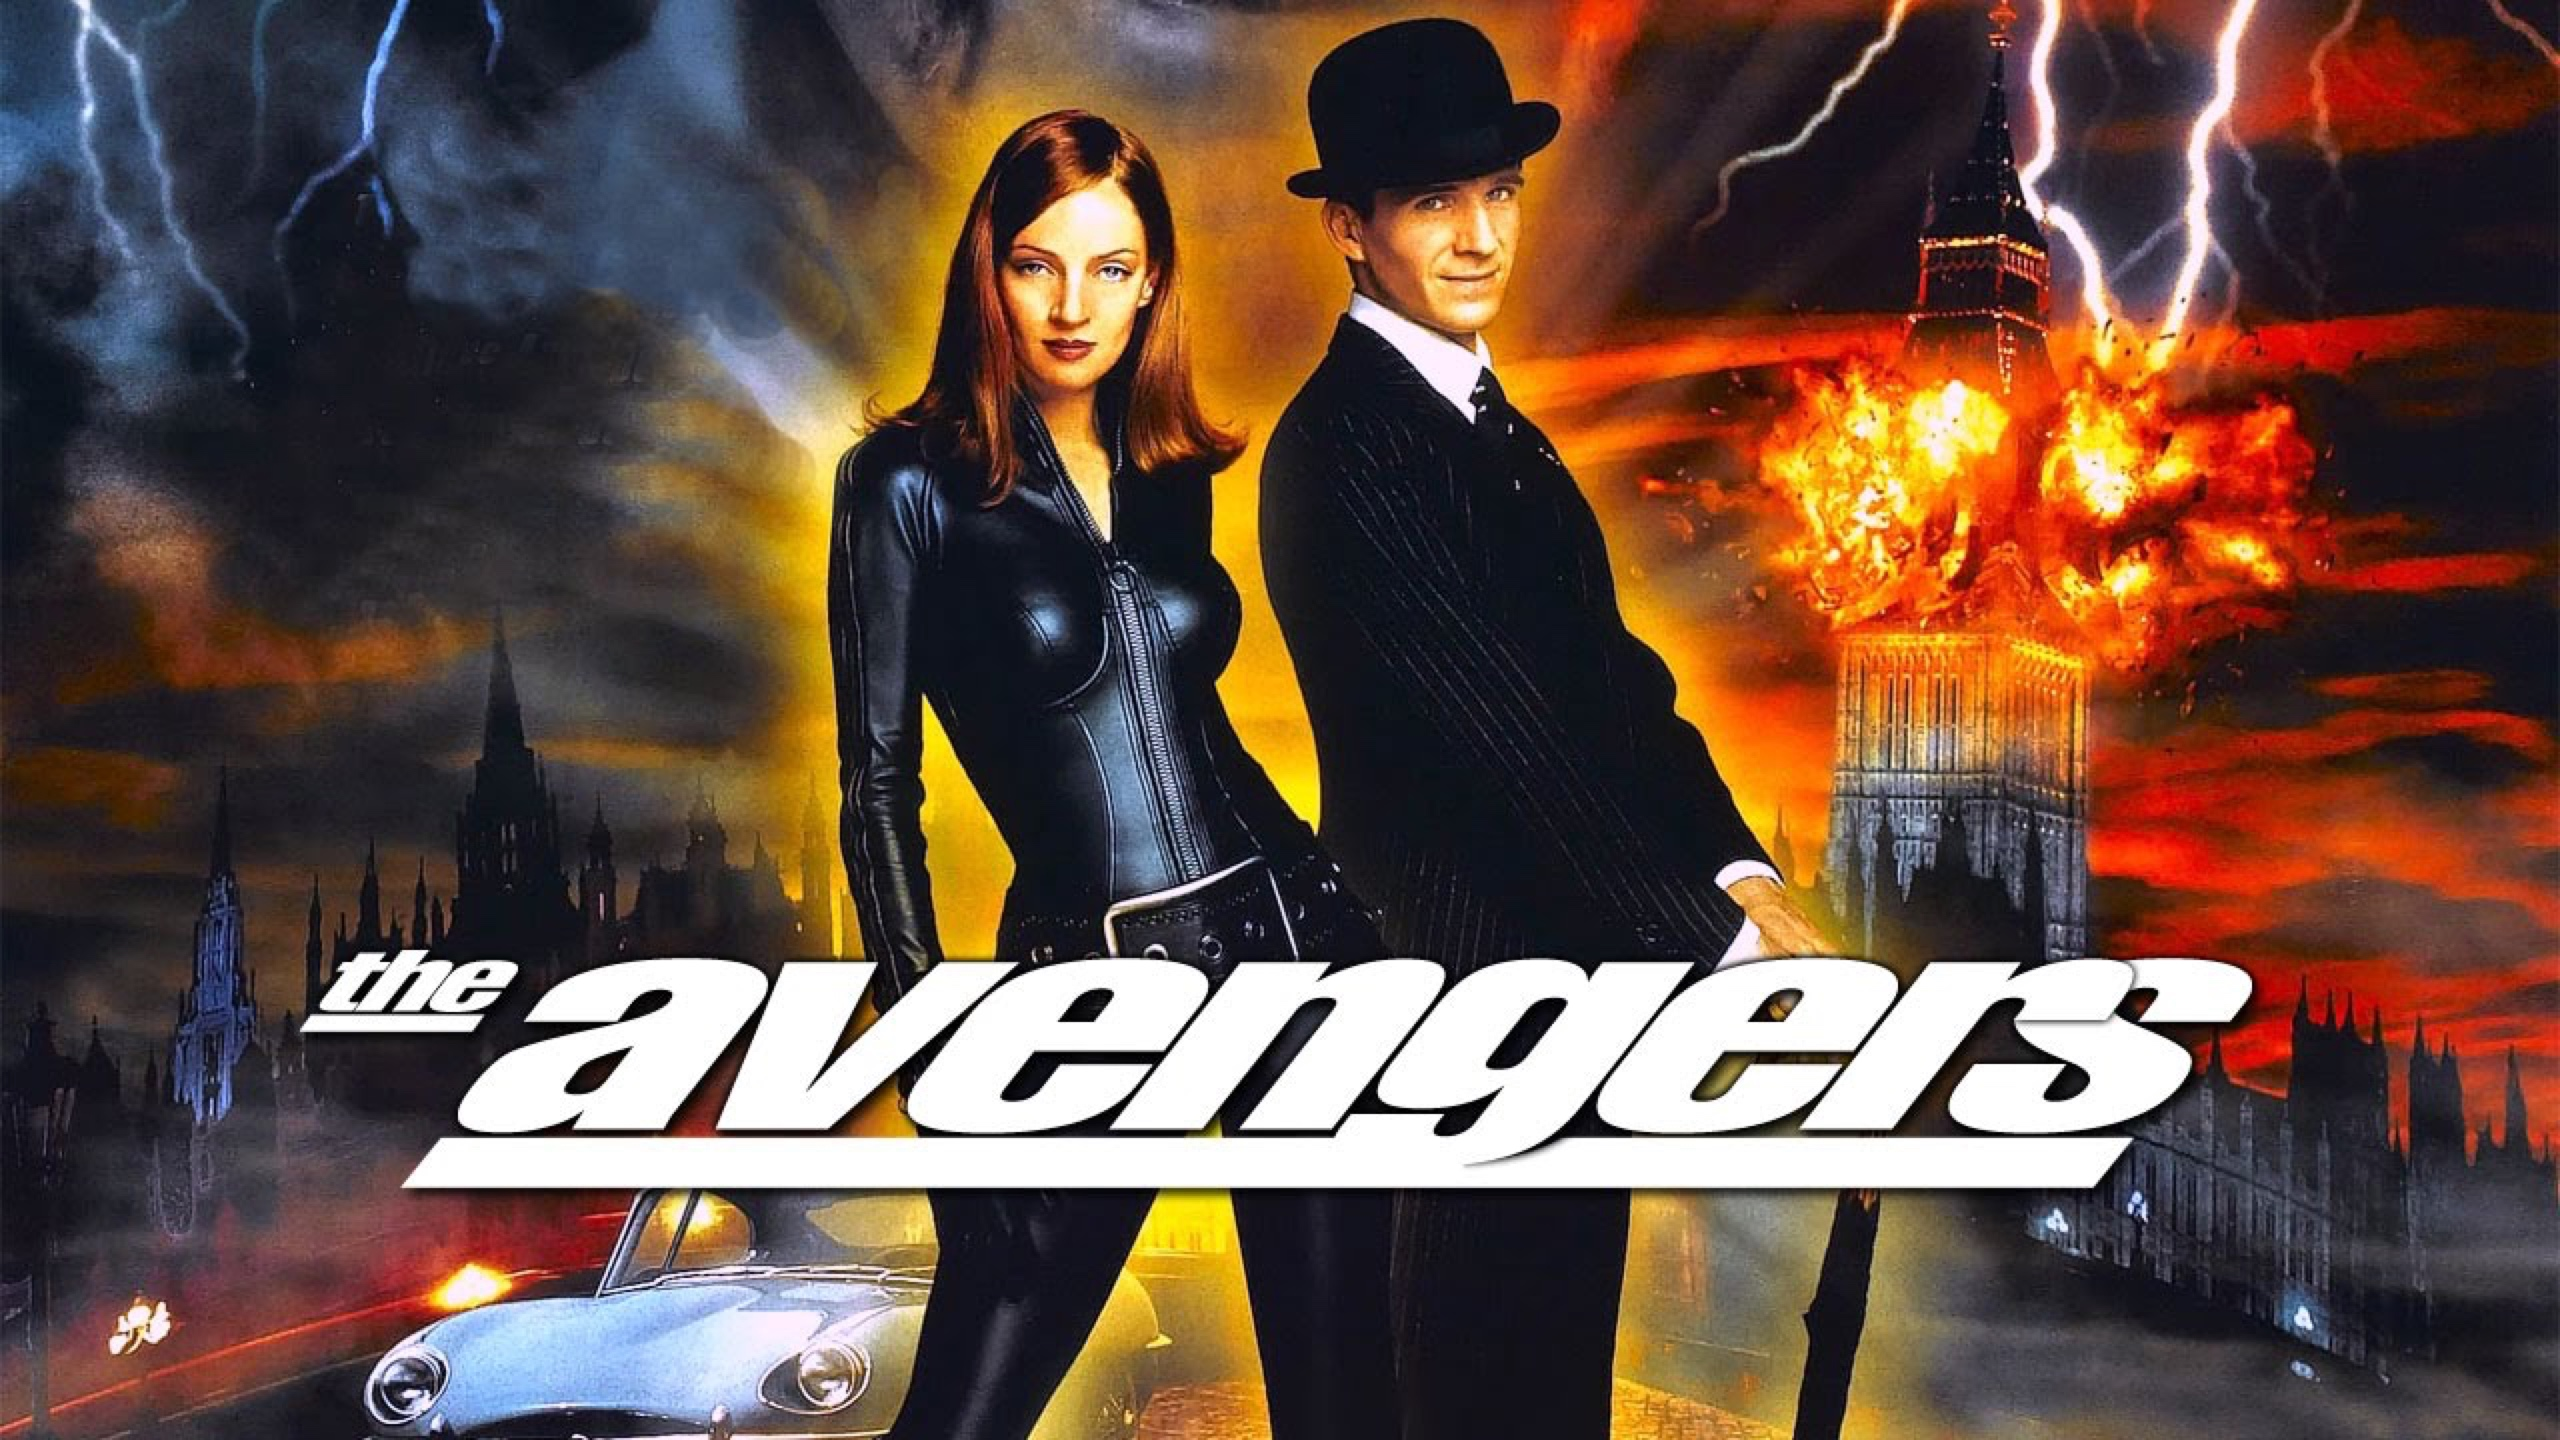 The Avengers: HDTGM: A Conversation With Jeremiah Chechik, Director Of